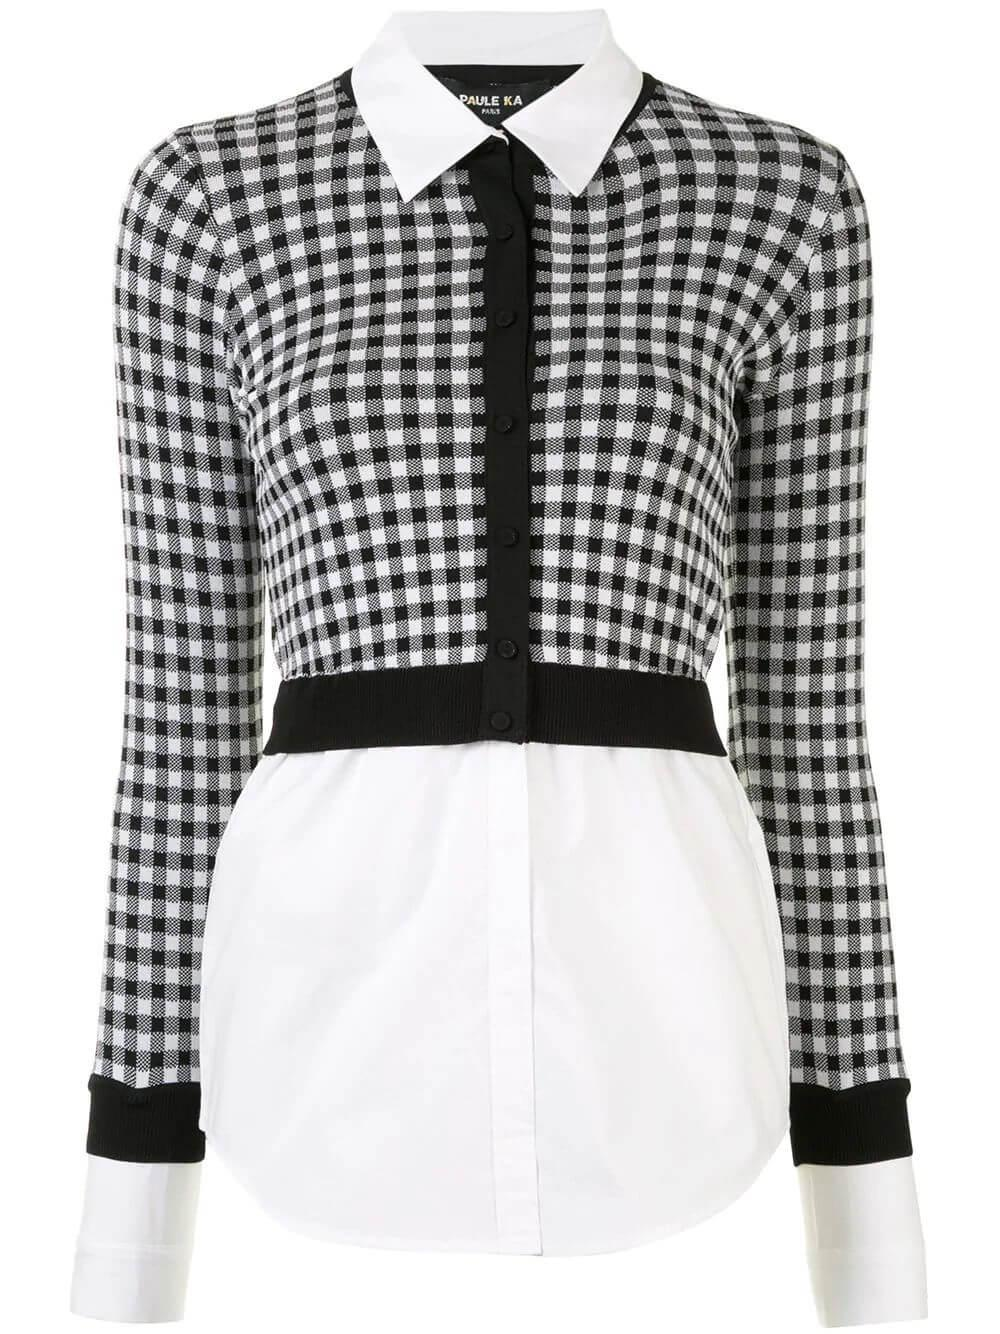 Checked Cropped Cardigan Over Poplin Blouse Item # 402/CA33